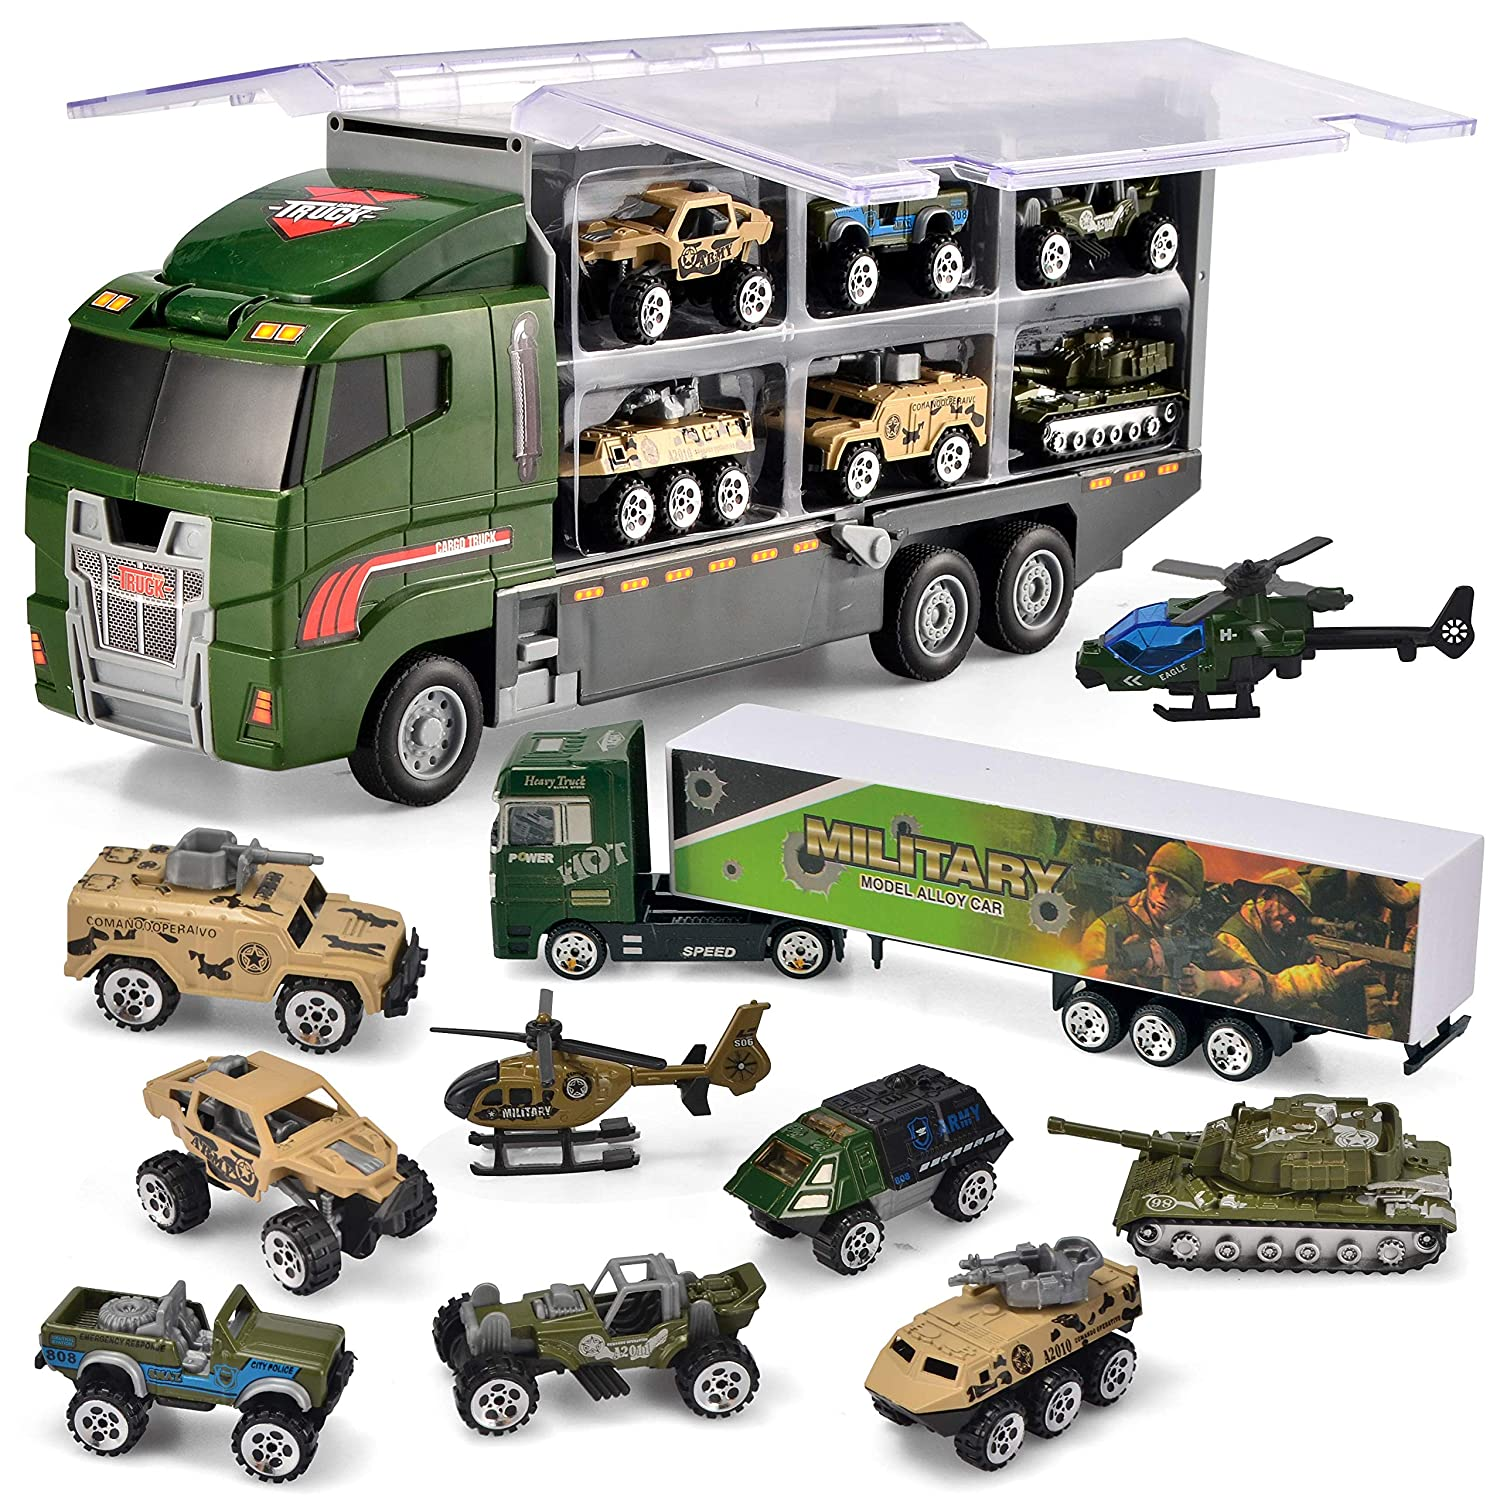 JOYIN 10 in 1 Die cast Military Truck Army Vehicle Mini Battle Car Toy Set in Carrier Truck